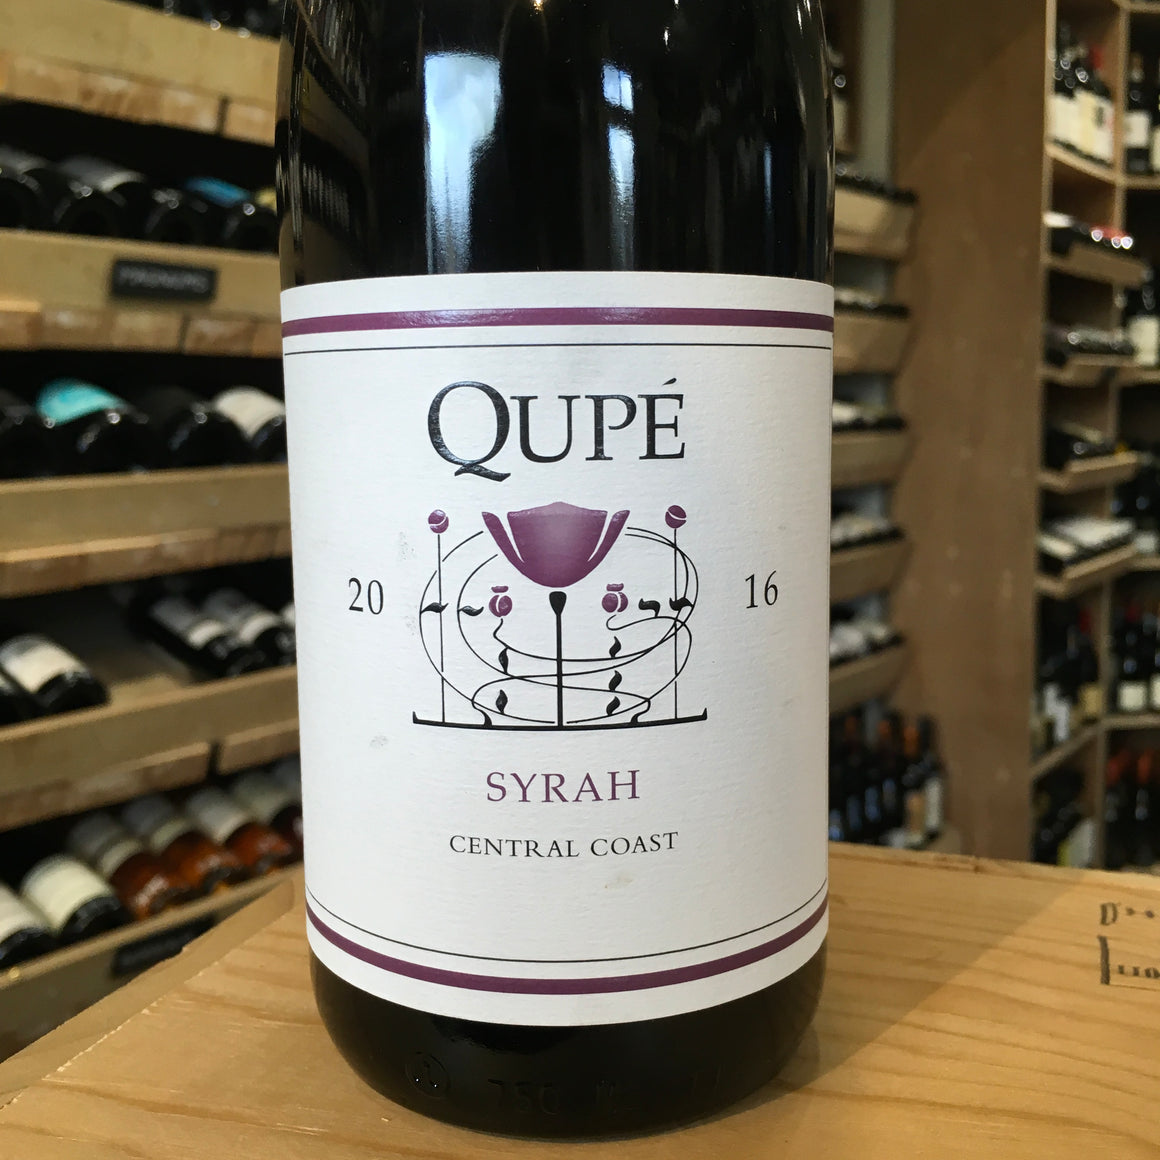 Qupe Central Coast Syrah 2016 - Butlers Wine Cellar Brighton